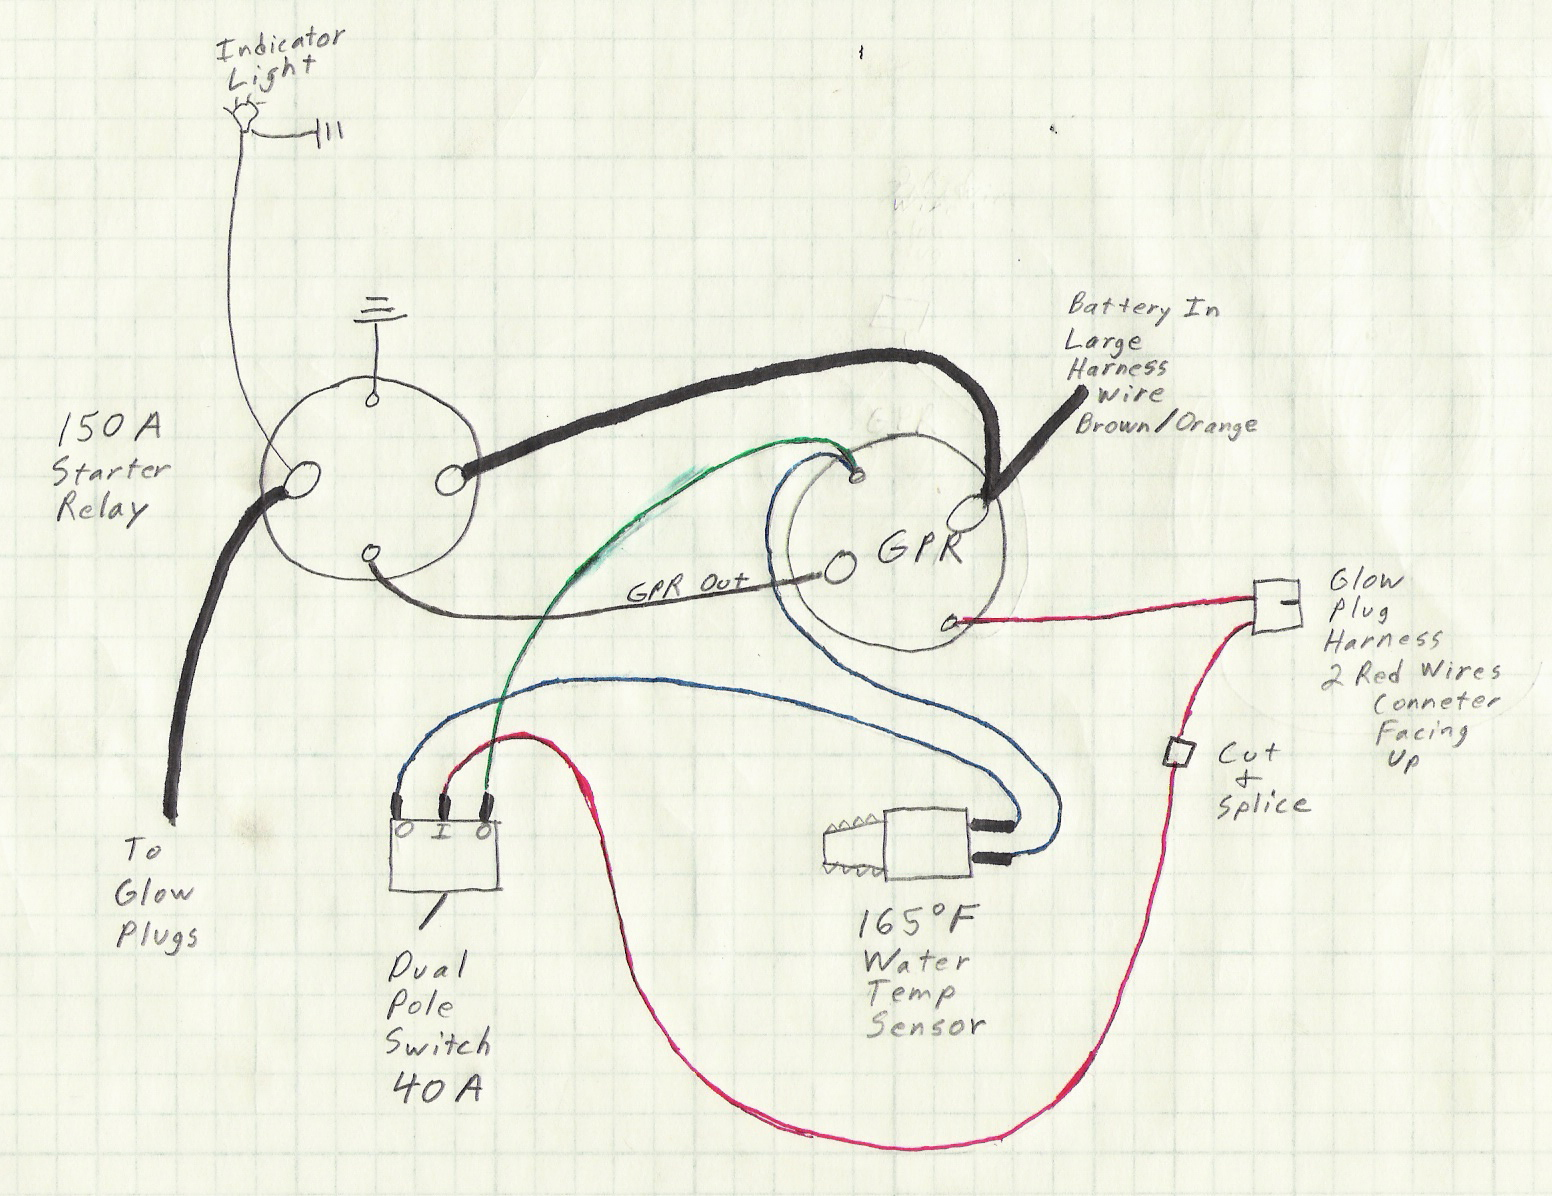 2002 7.3 Powerstroke Glow Plug Relay Wiring Diagram from www.thedieselstop.com